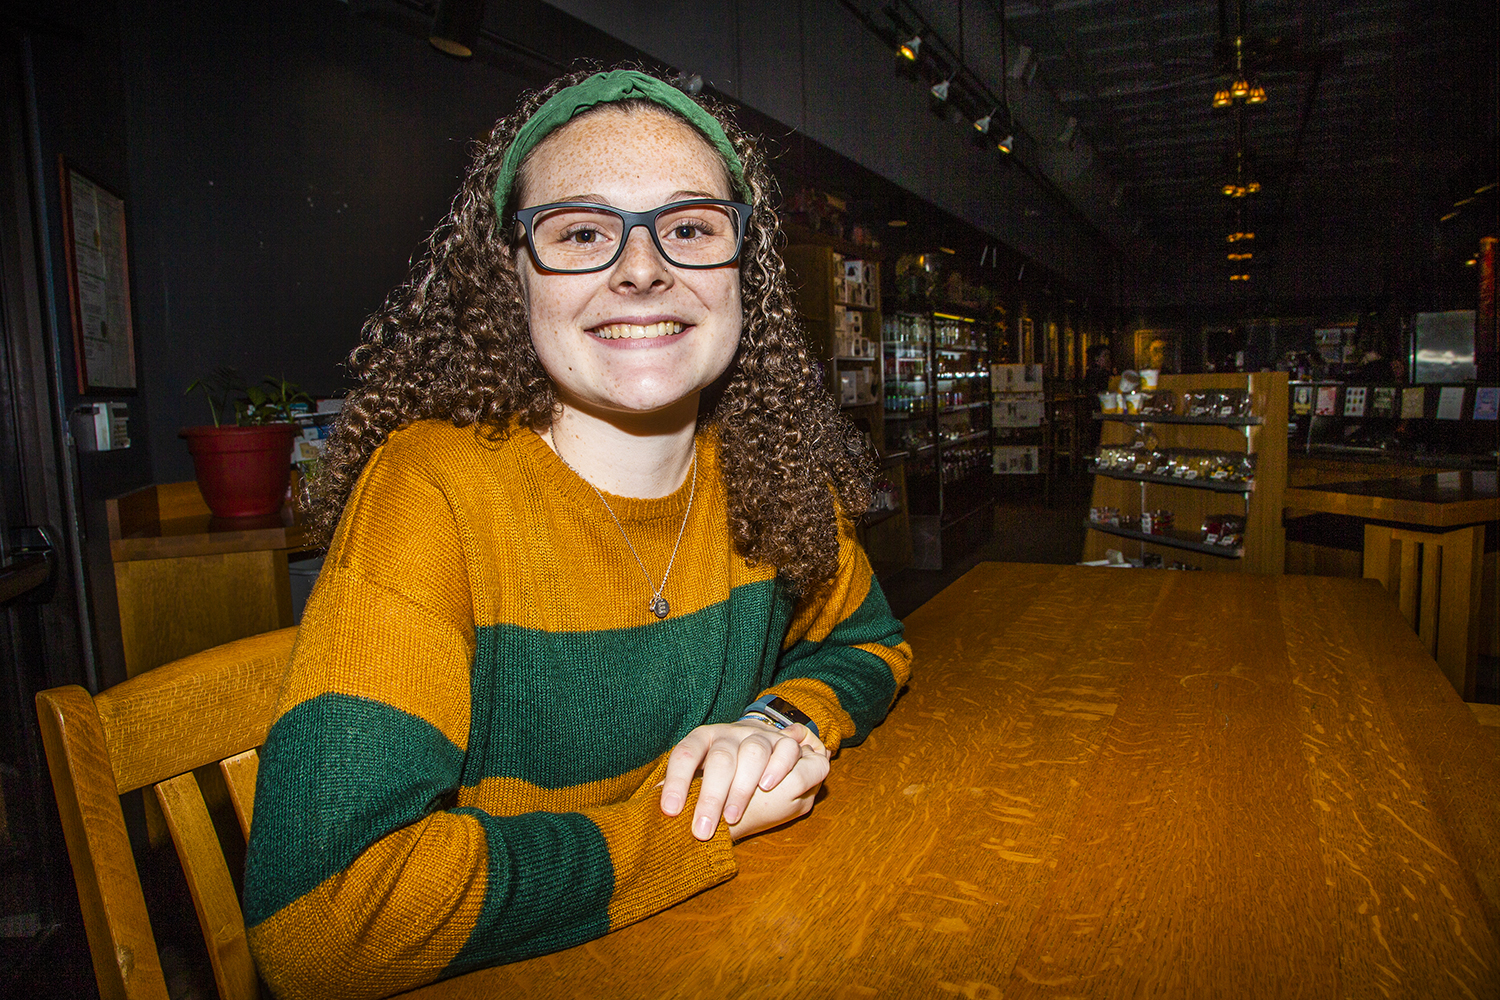 UI junior Ella McDonald poses for a portrait at Java House on Monday, February 11, 2019. McDonald started the